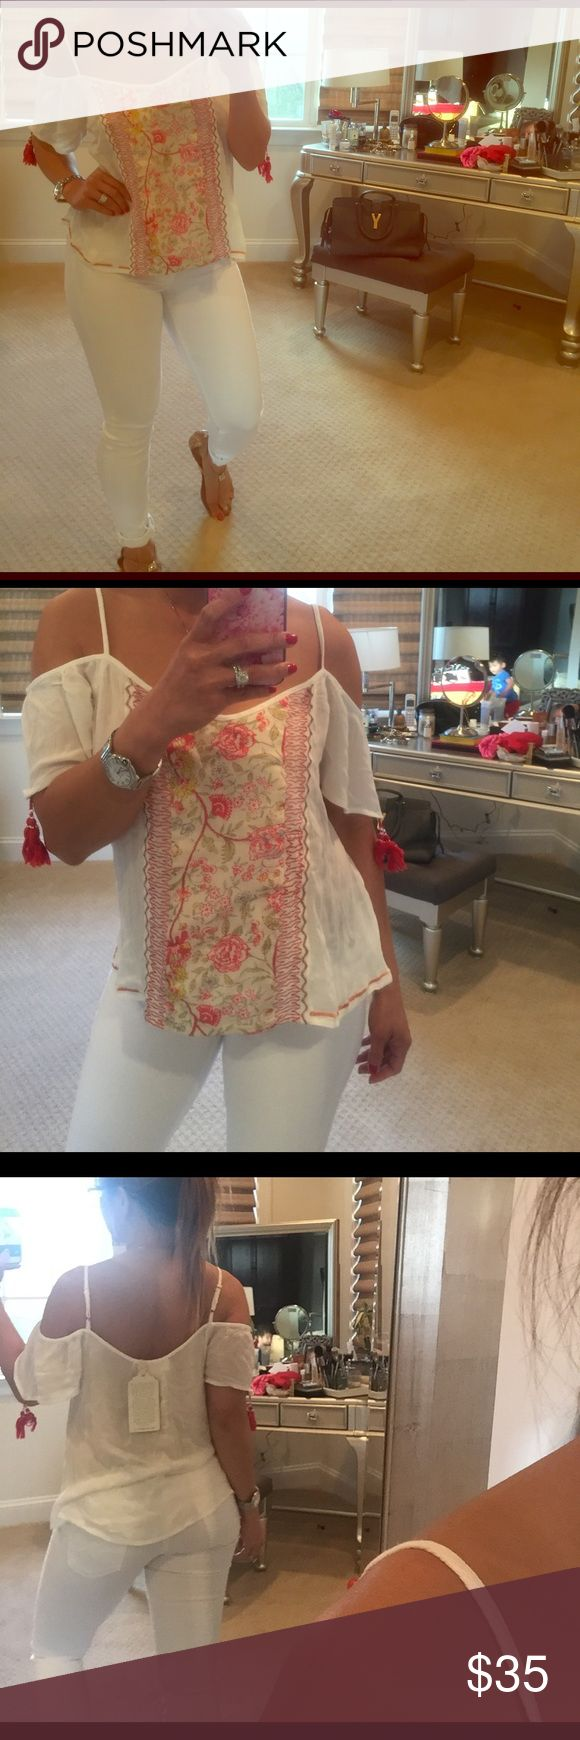 BAND OF GYPSIES COLD SHOULDER BOHO TOP Brand new with tag. Festival ready.  I'm 5'2. Band of Gypsies Tops Blouses